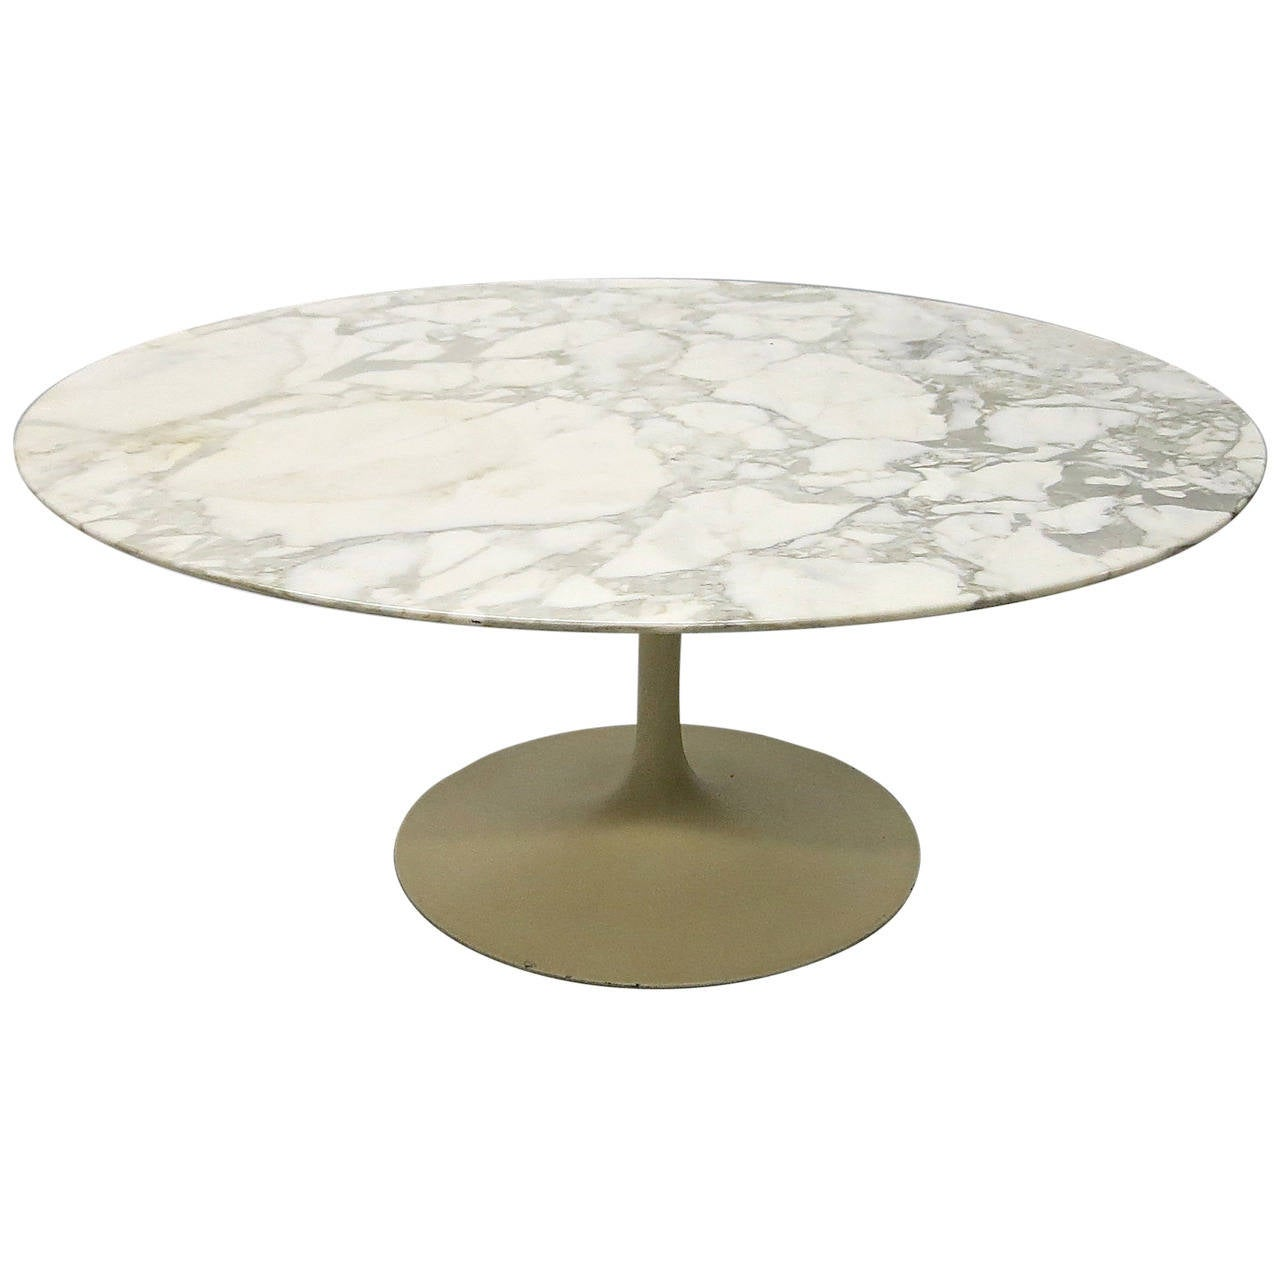 Round marble coffee table designed by eero saarinen for knoll usa circa 1960 at 1stdibs Round marble coffee tables